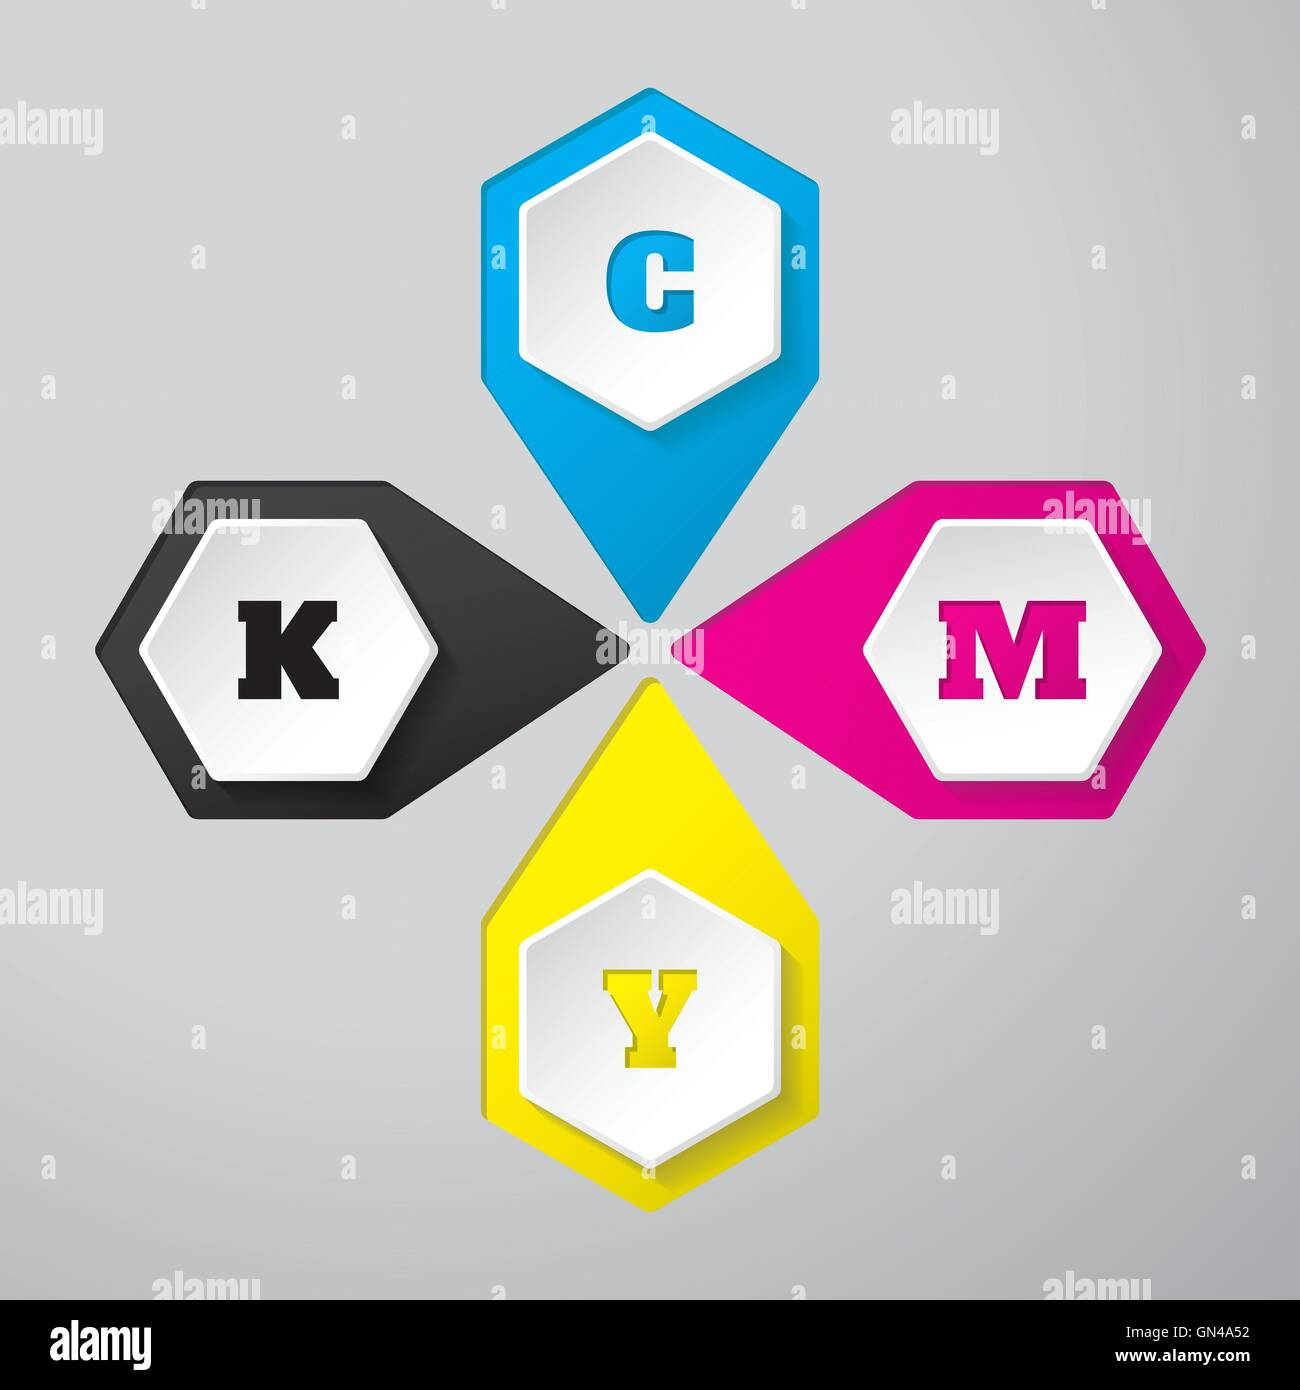 Cmyk wallpaper with 3d hexagon buttons - Stock Image